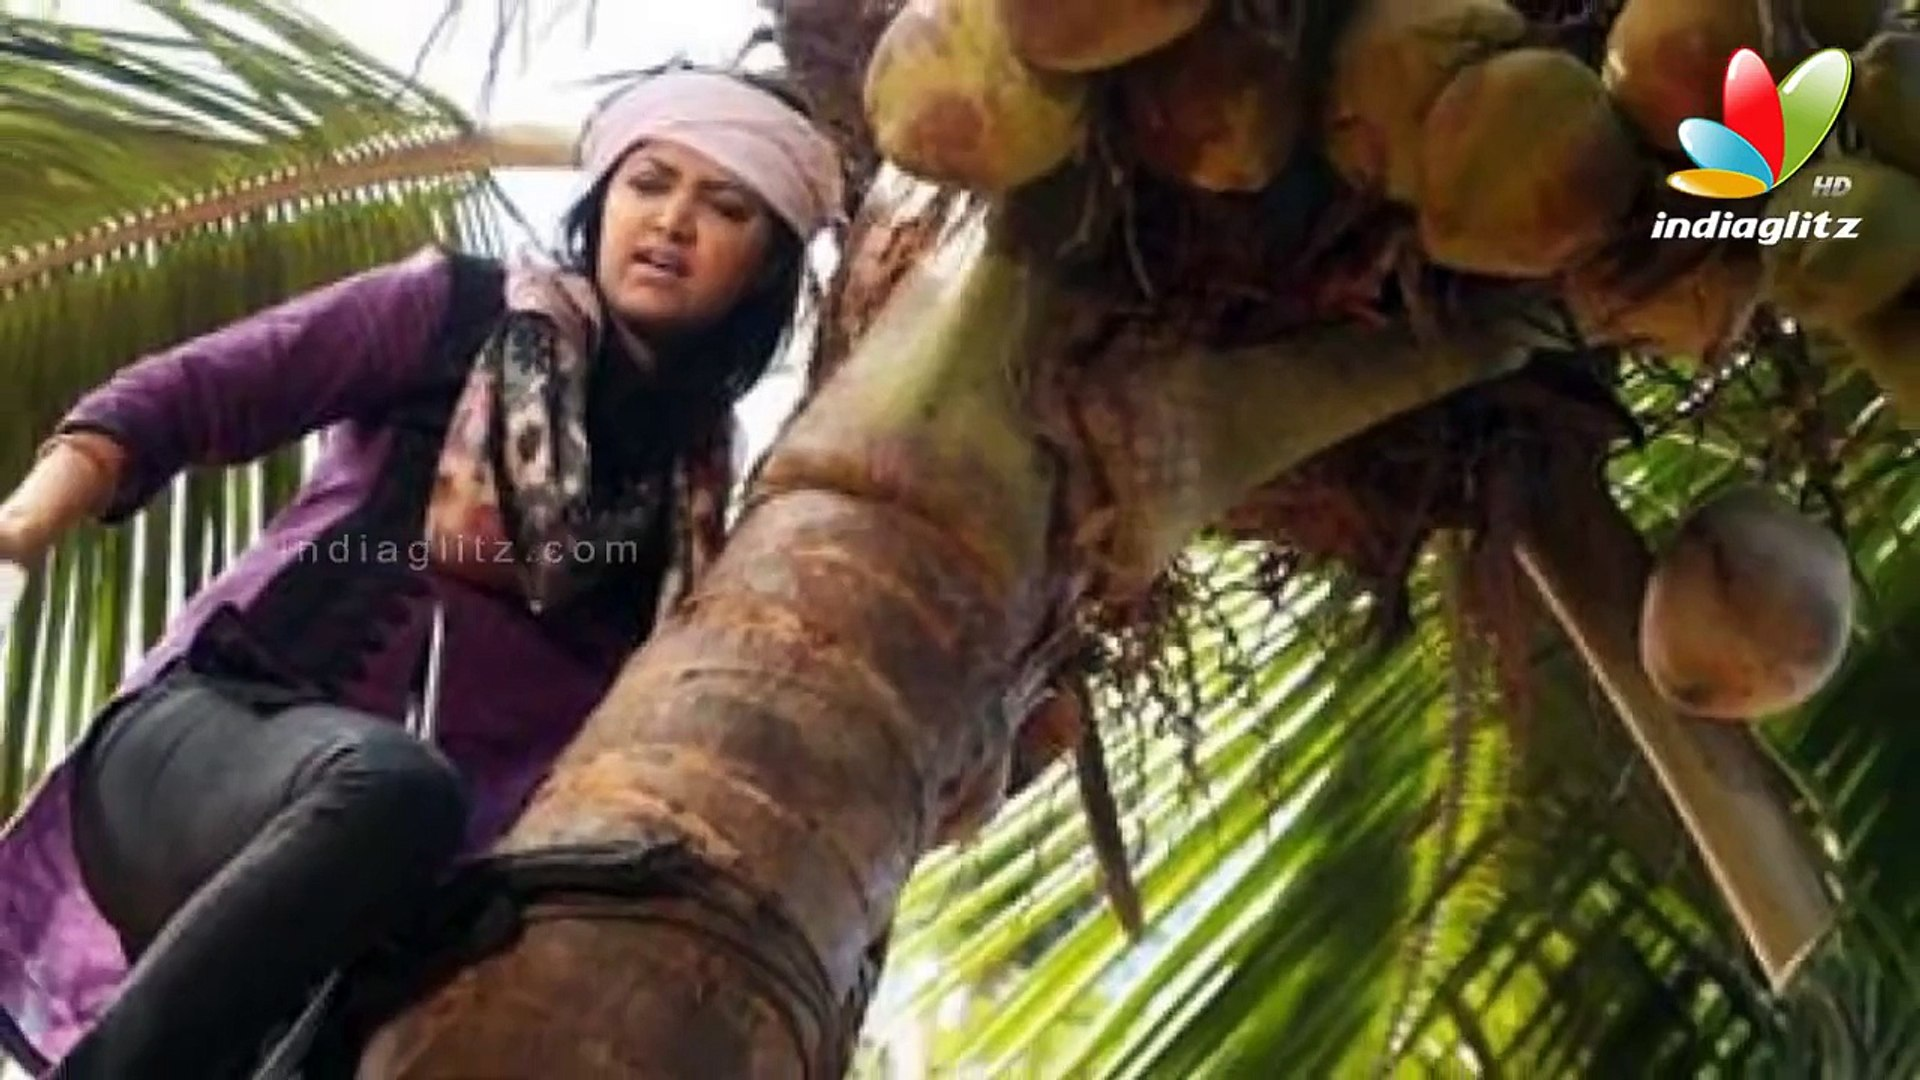 Mamta Mohandas Climbing Coconut Tree I Latest Hot Malayalam Movie News